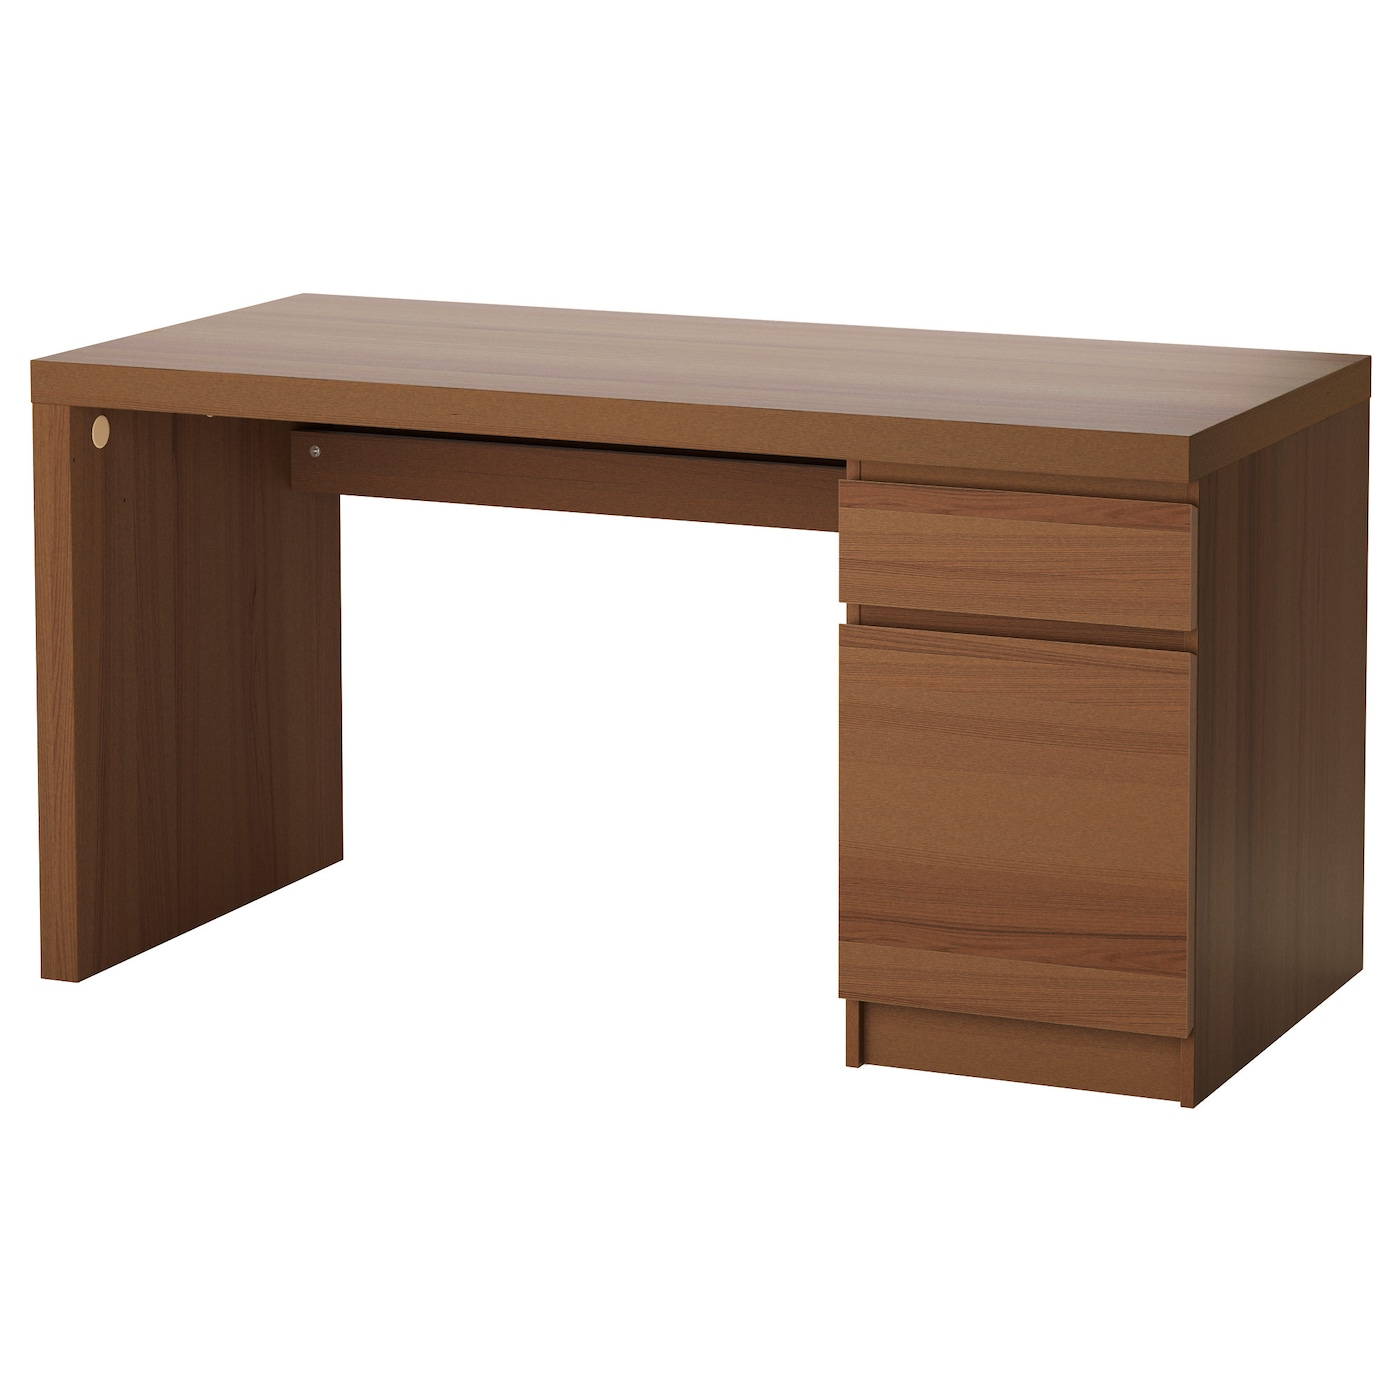 Malm desk brown stained ash veneer 140x65 cm ikea - Mesa auxiliar malm ikea ...